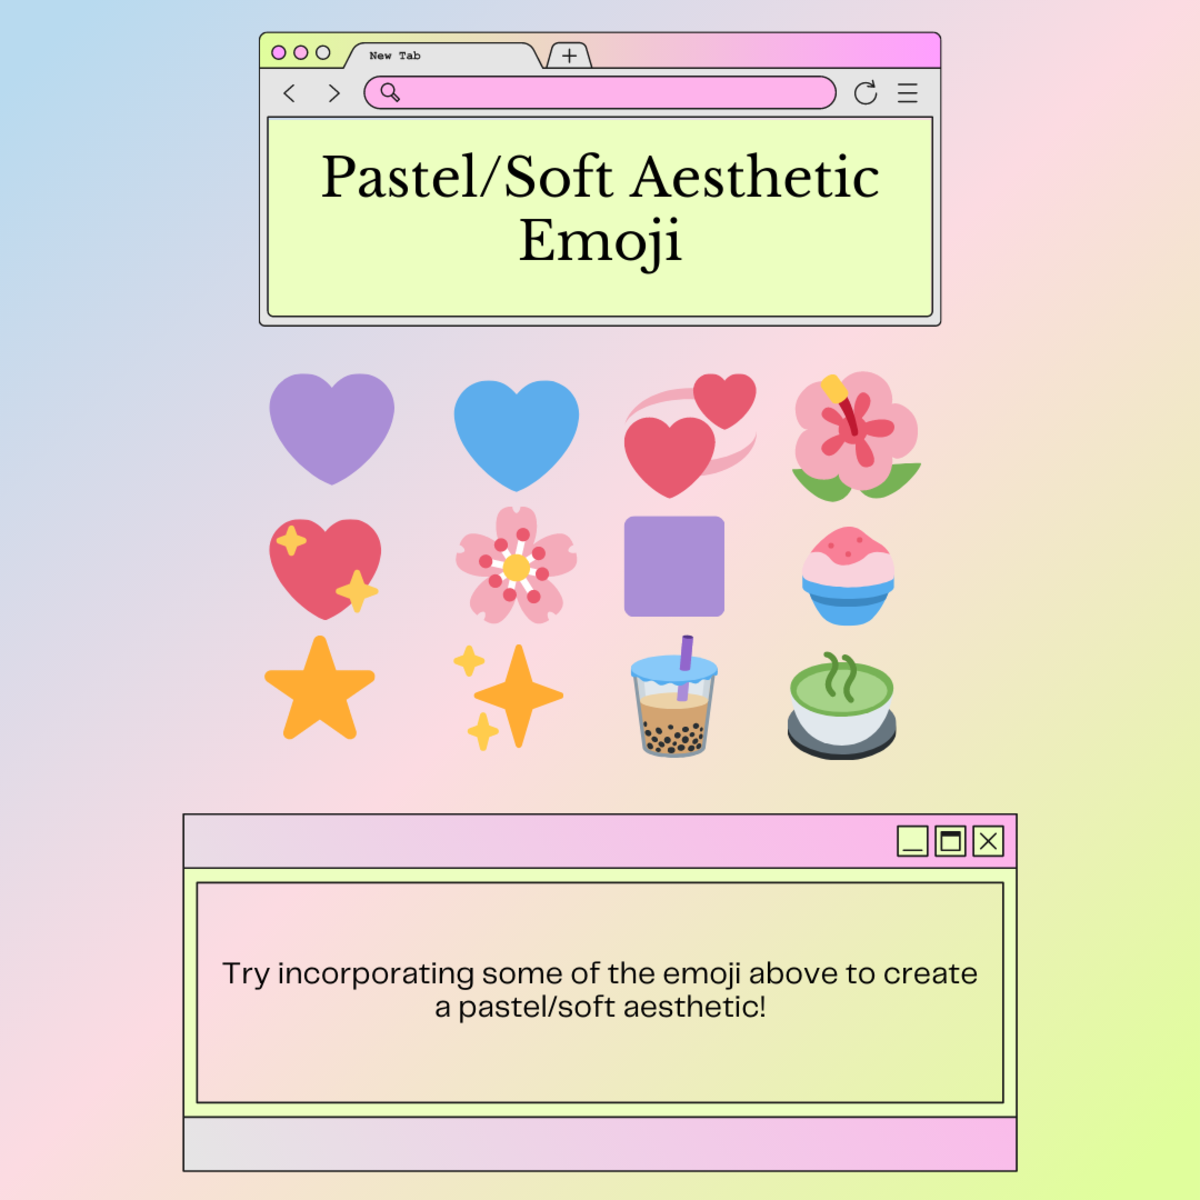 Here are some pastel emoji to inspire you!